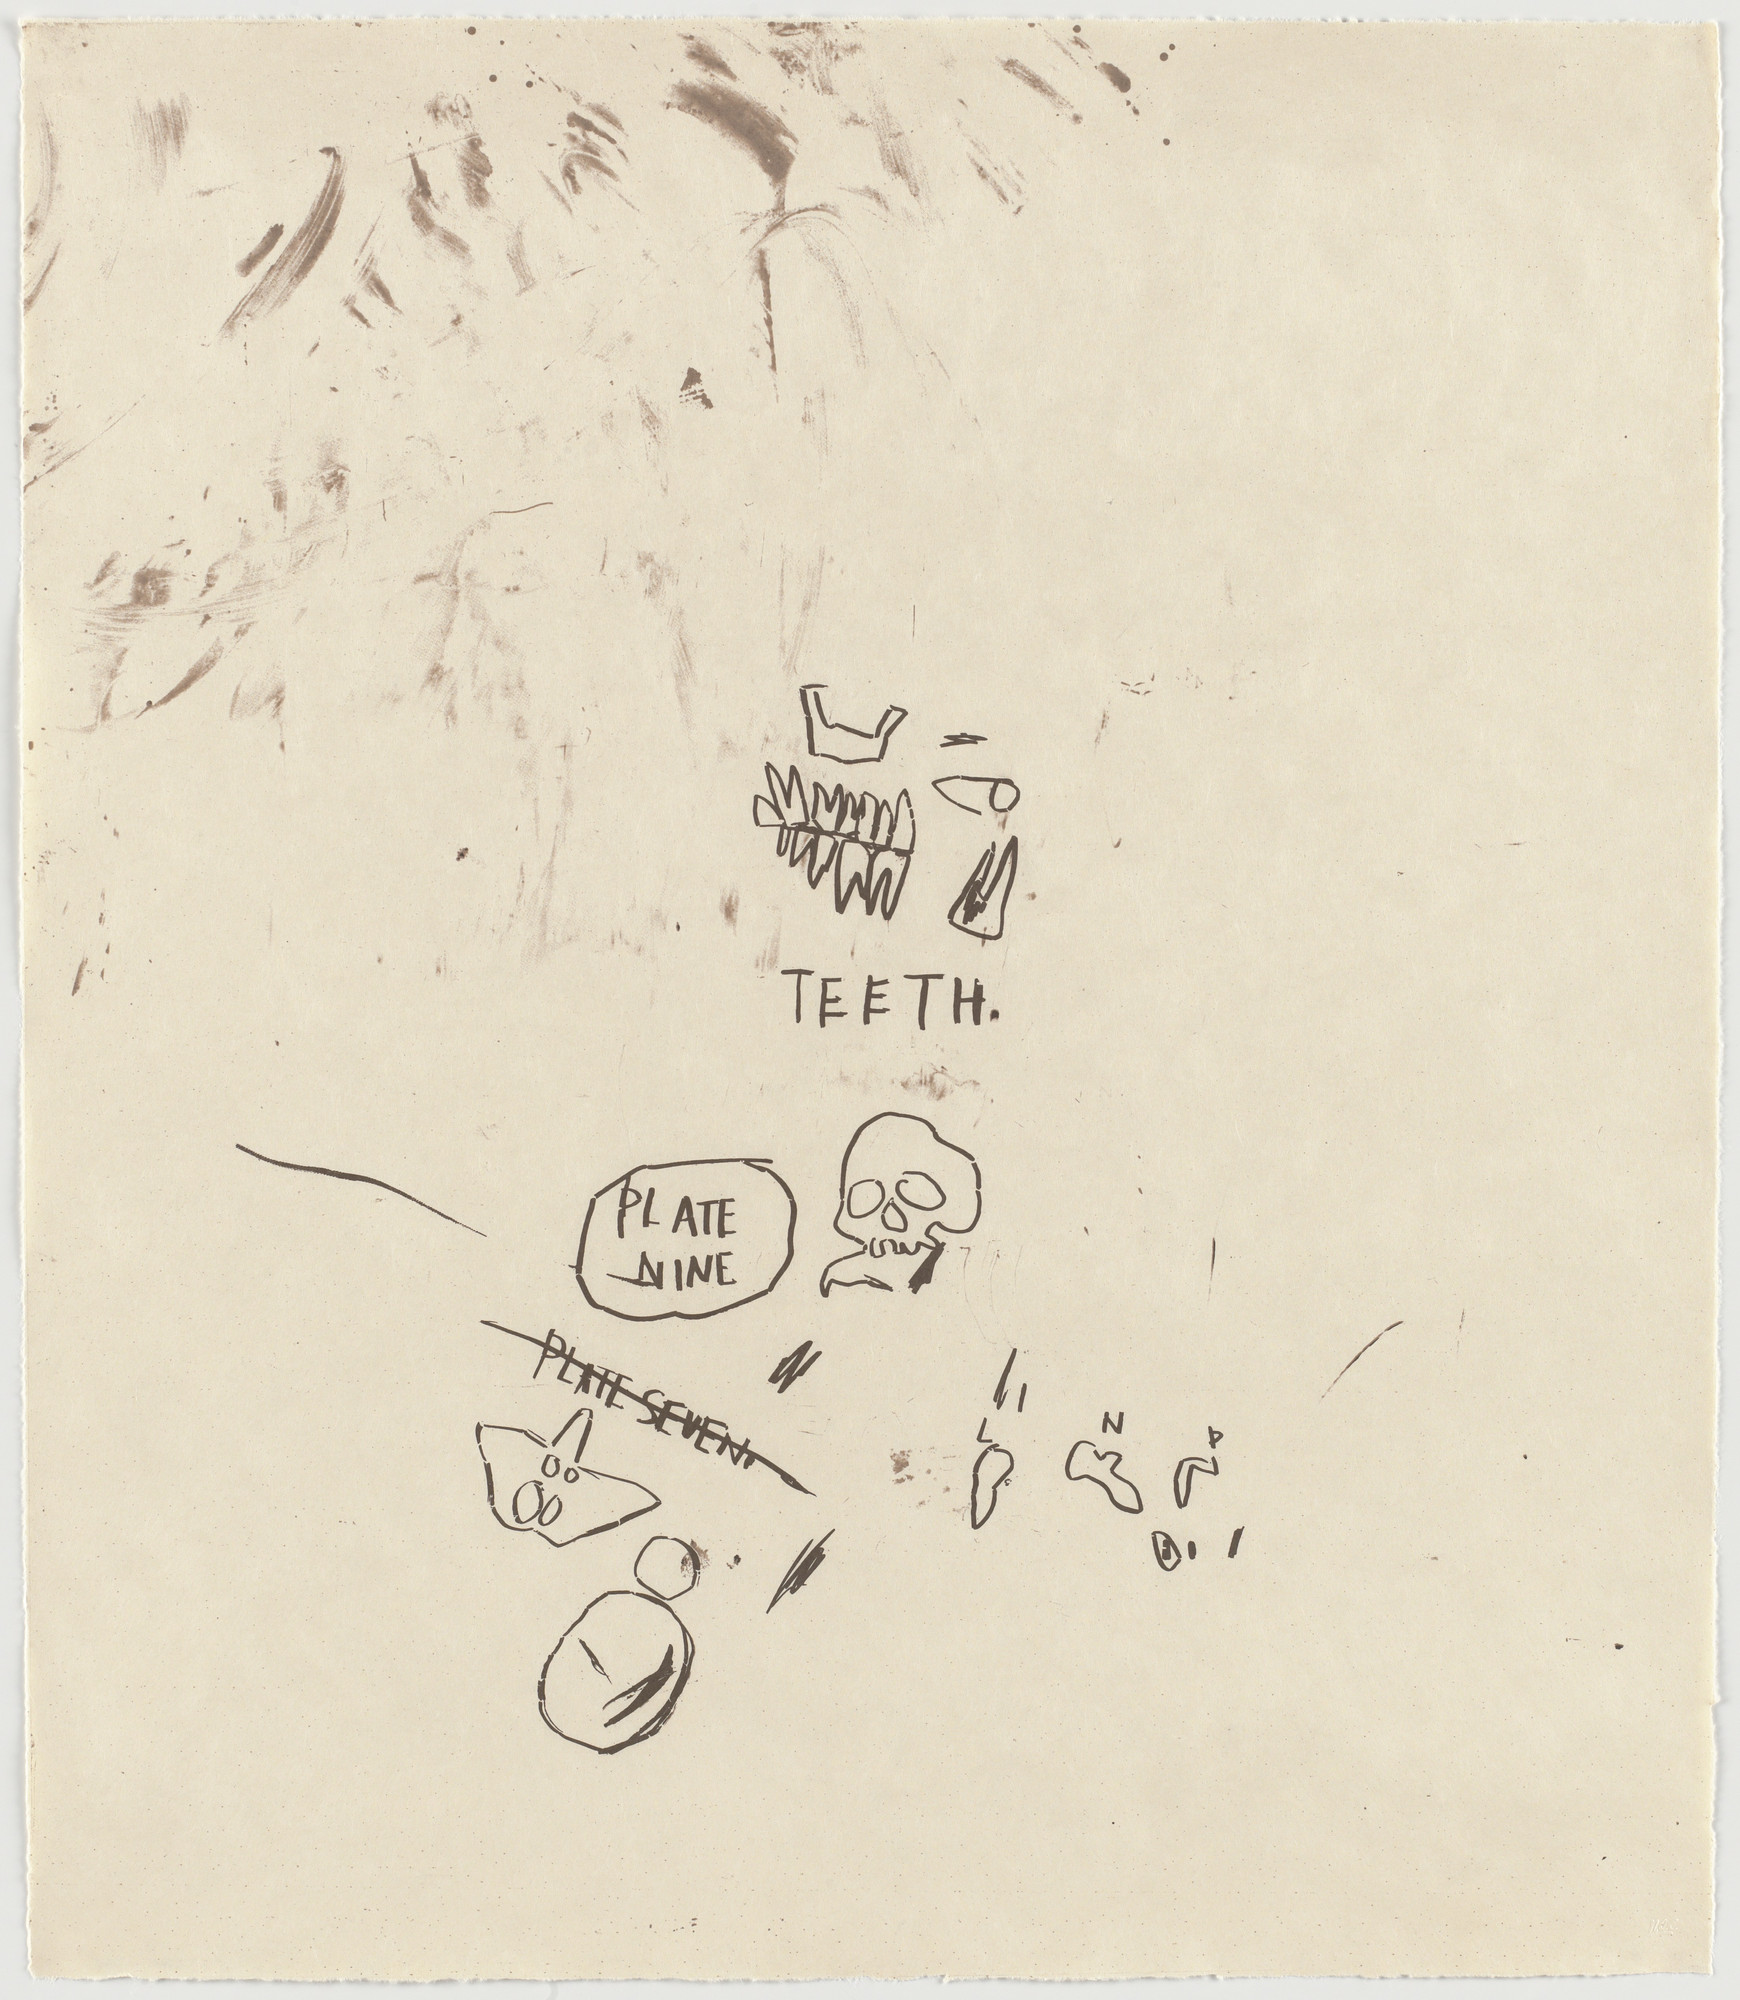 Jean-Michel Basquiat. Untitled, From Leonardo. 1983